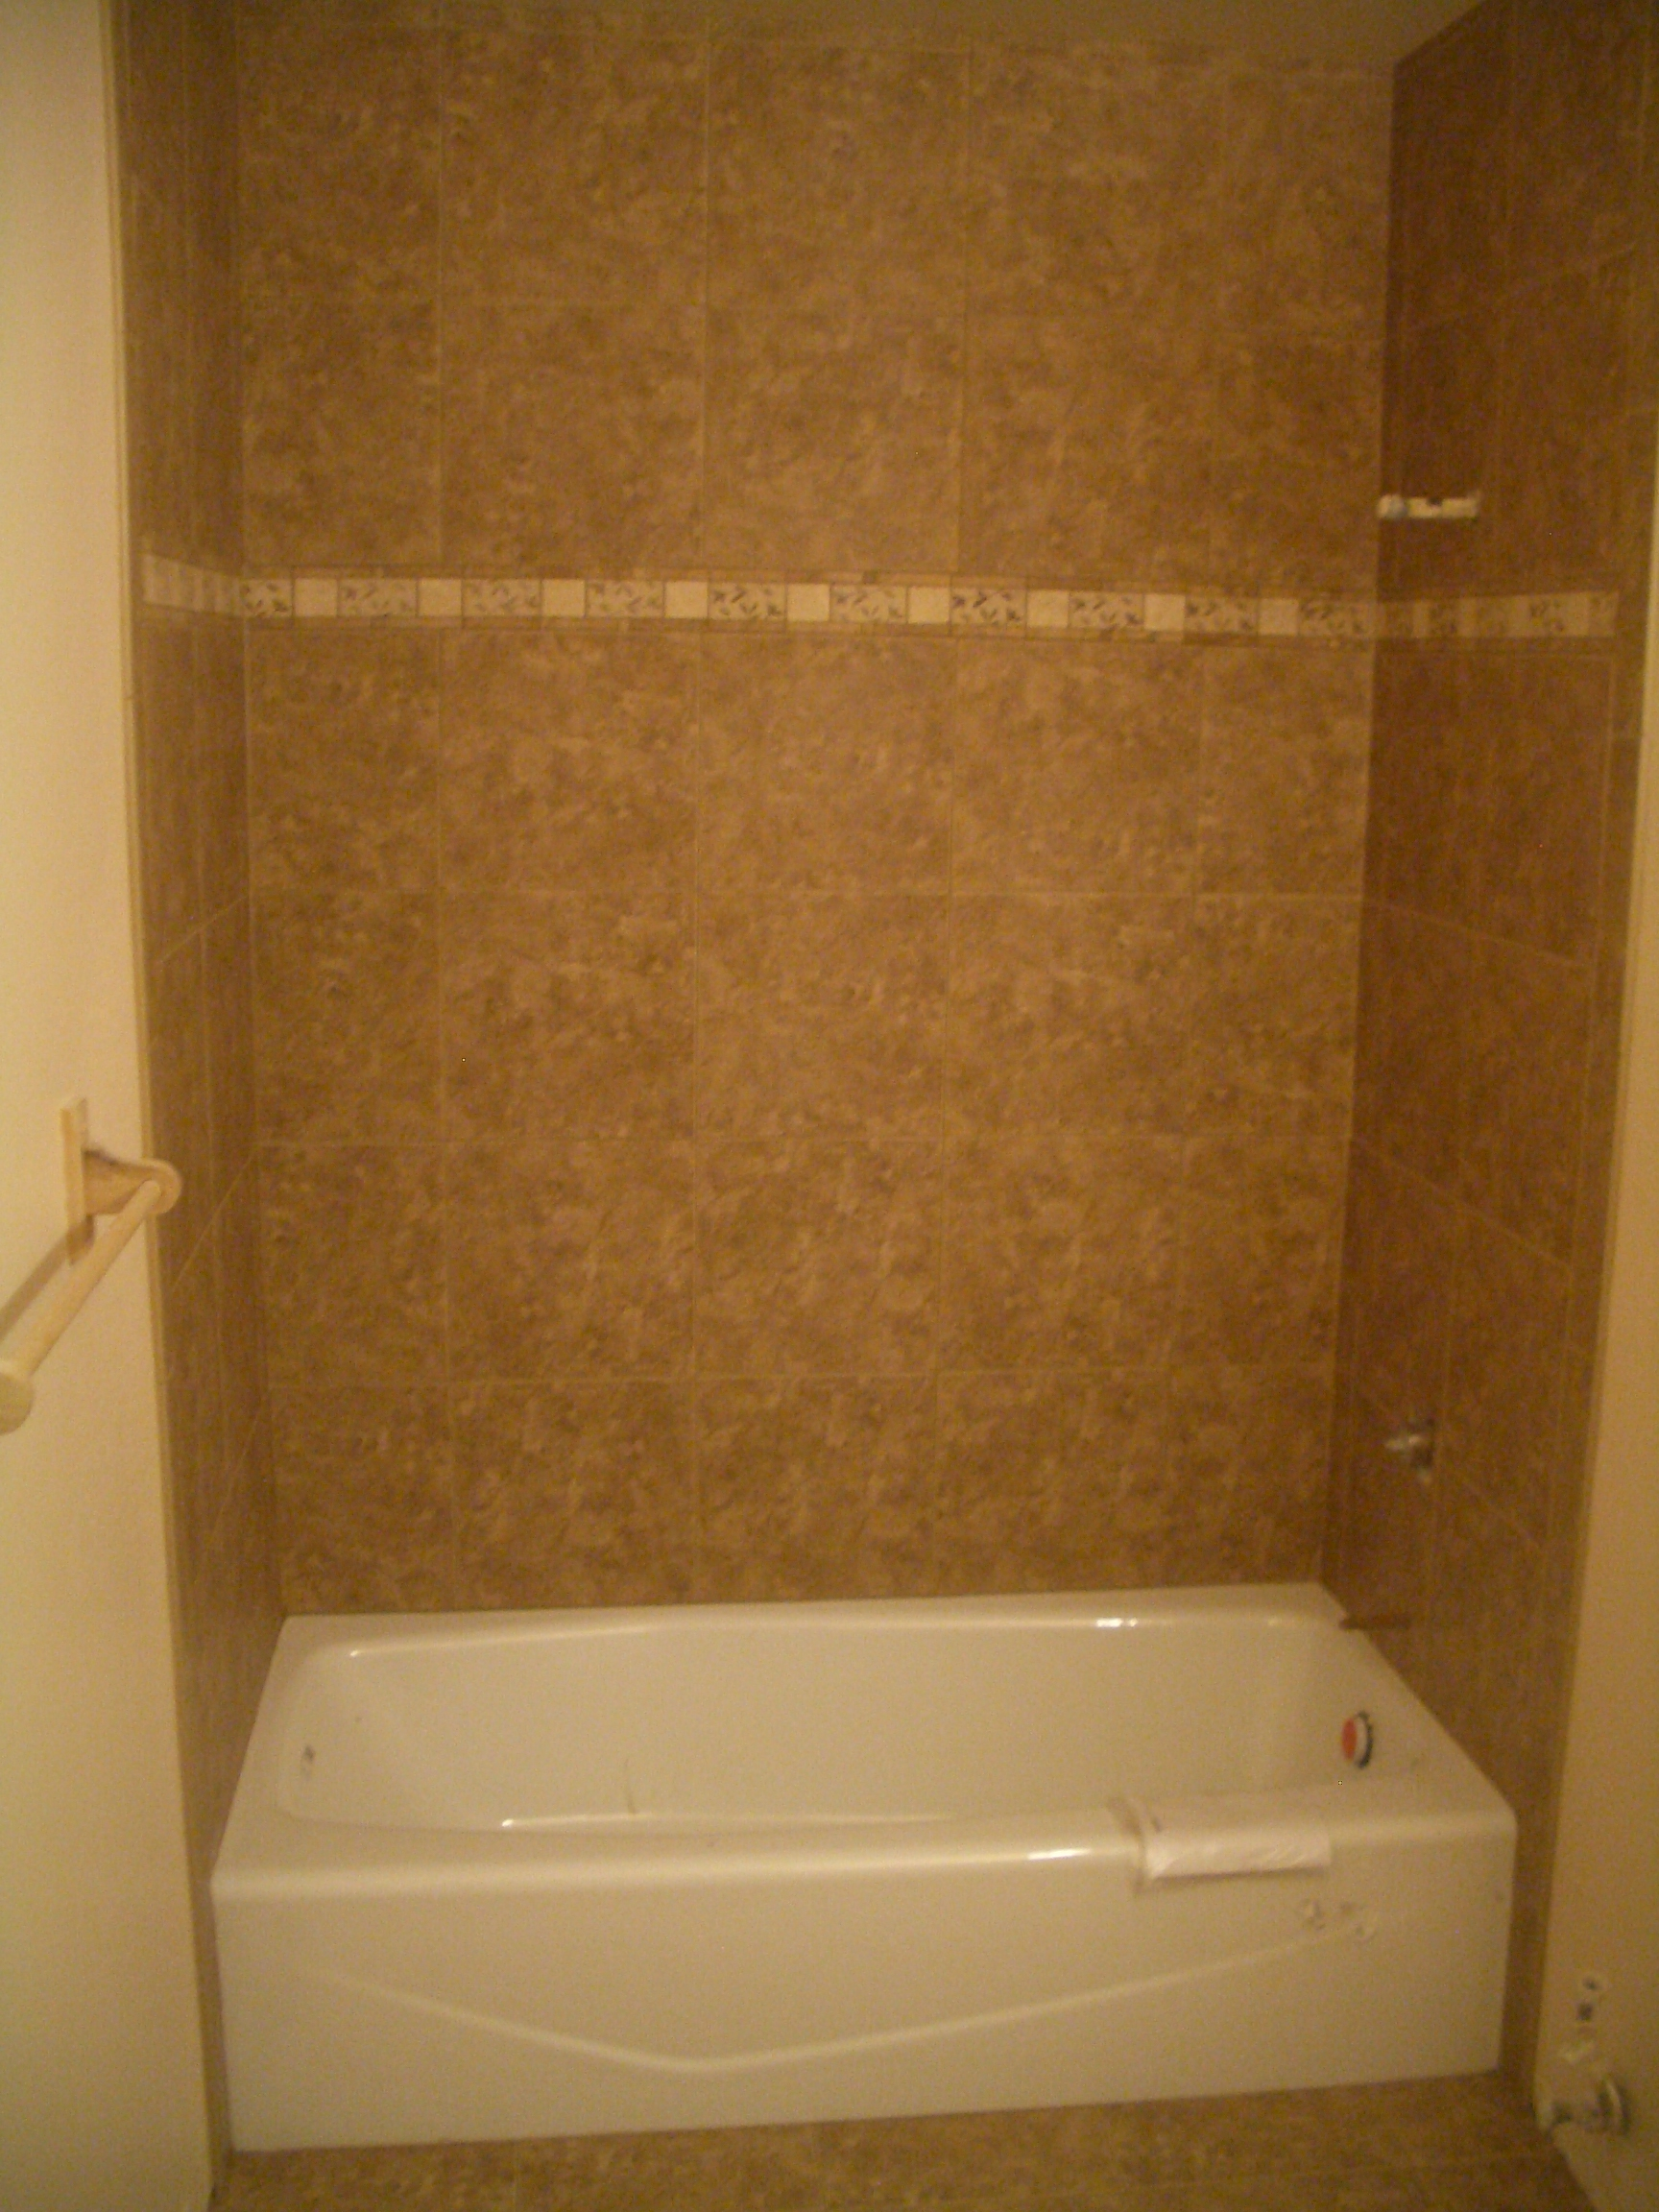 Bathroom Ceramic Tile Images : Porcelain tile shower with travertine band